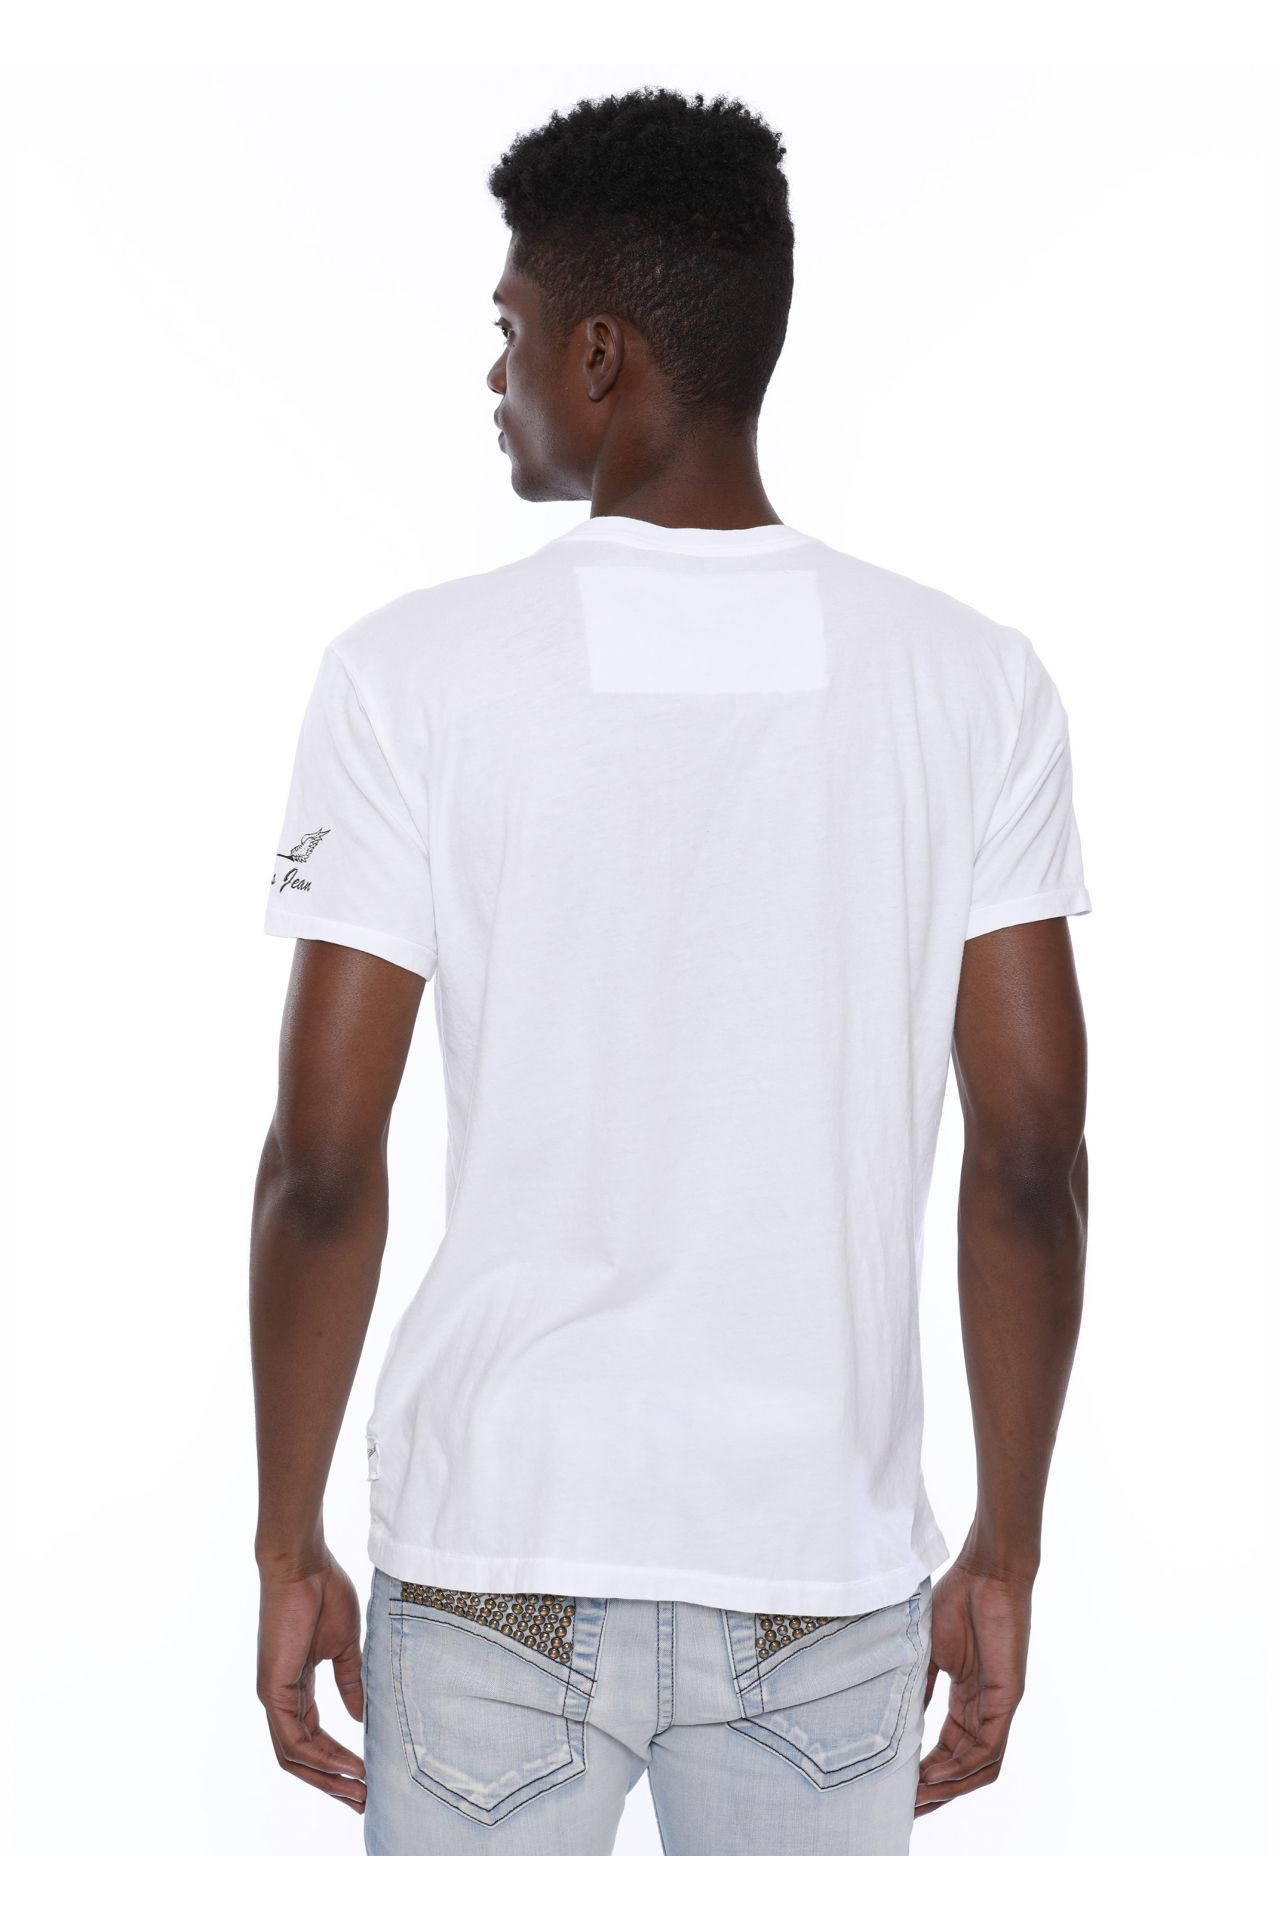 TRADITIONAL EAGLE TEE IN WHITE